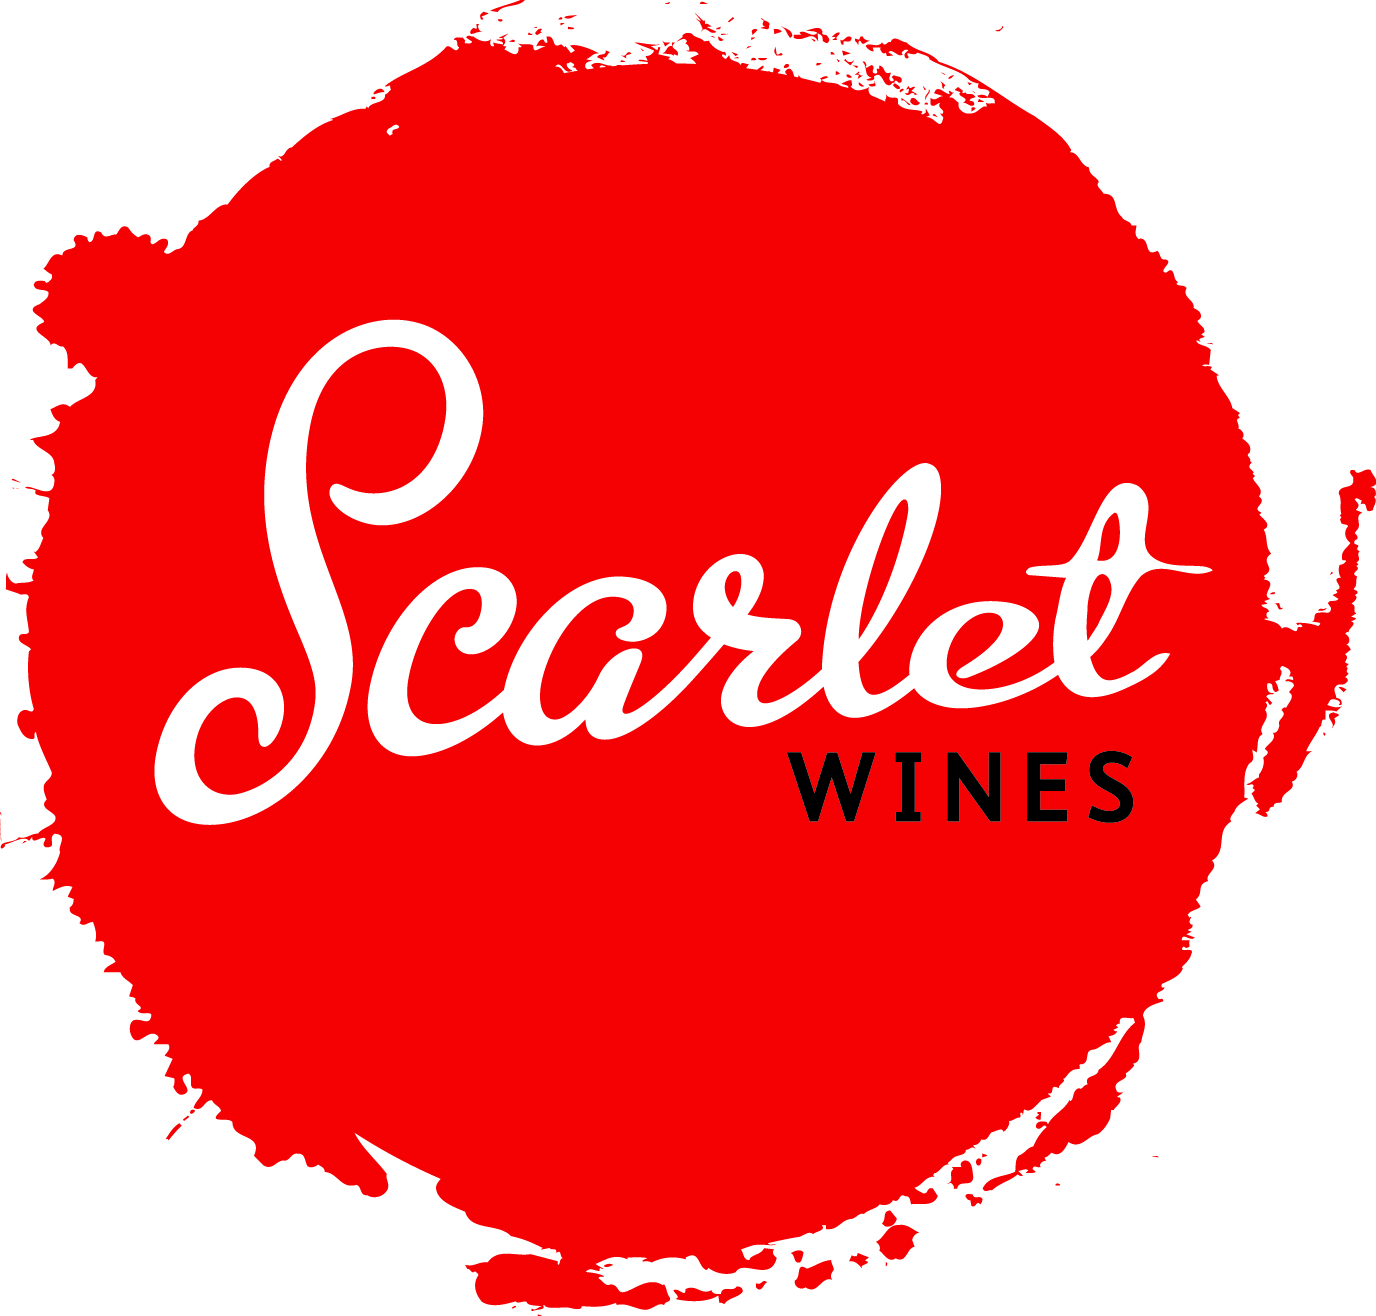 SCARLET WINES LIMITED